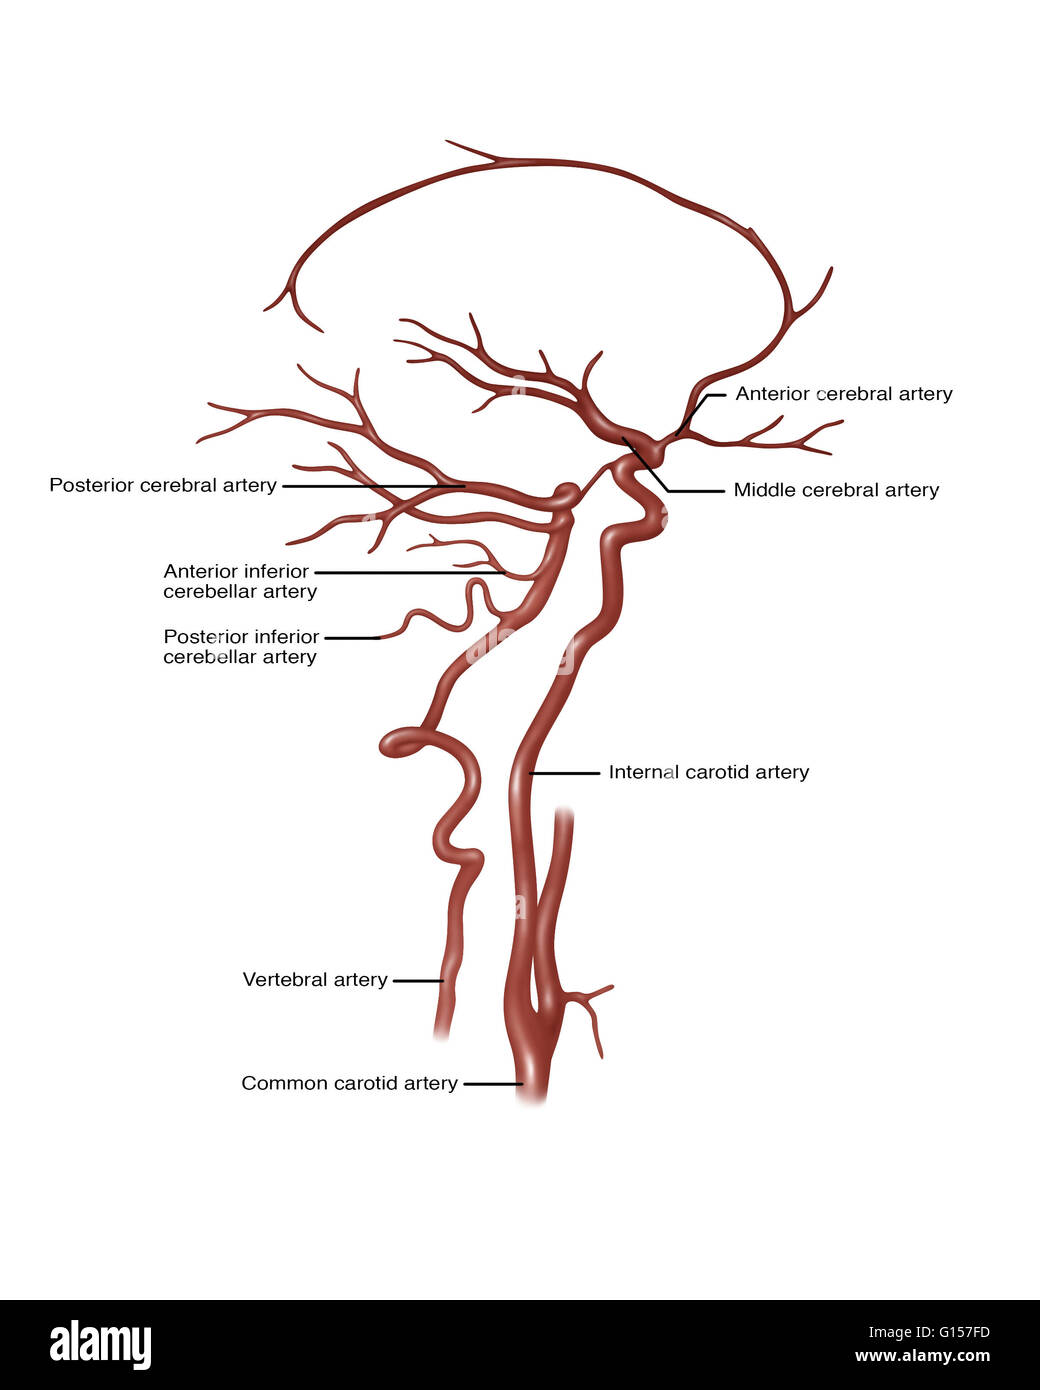 Illustration showing arteries in the head. Noted at right are anterior cerebral artery, middle cerebral artery, - Stock Image